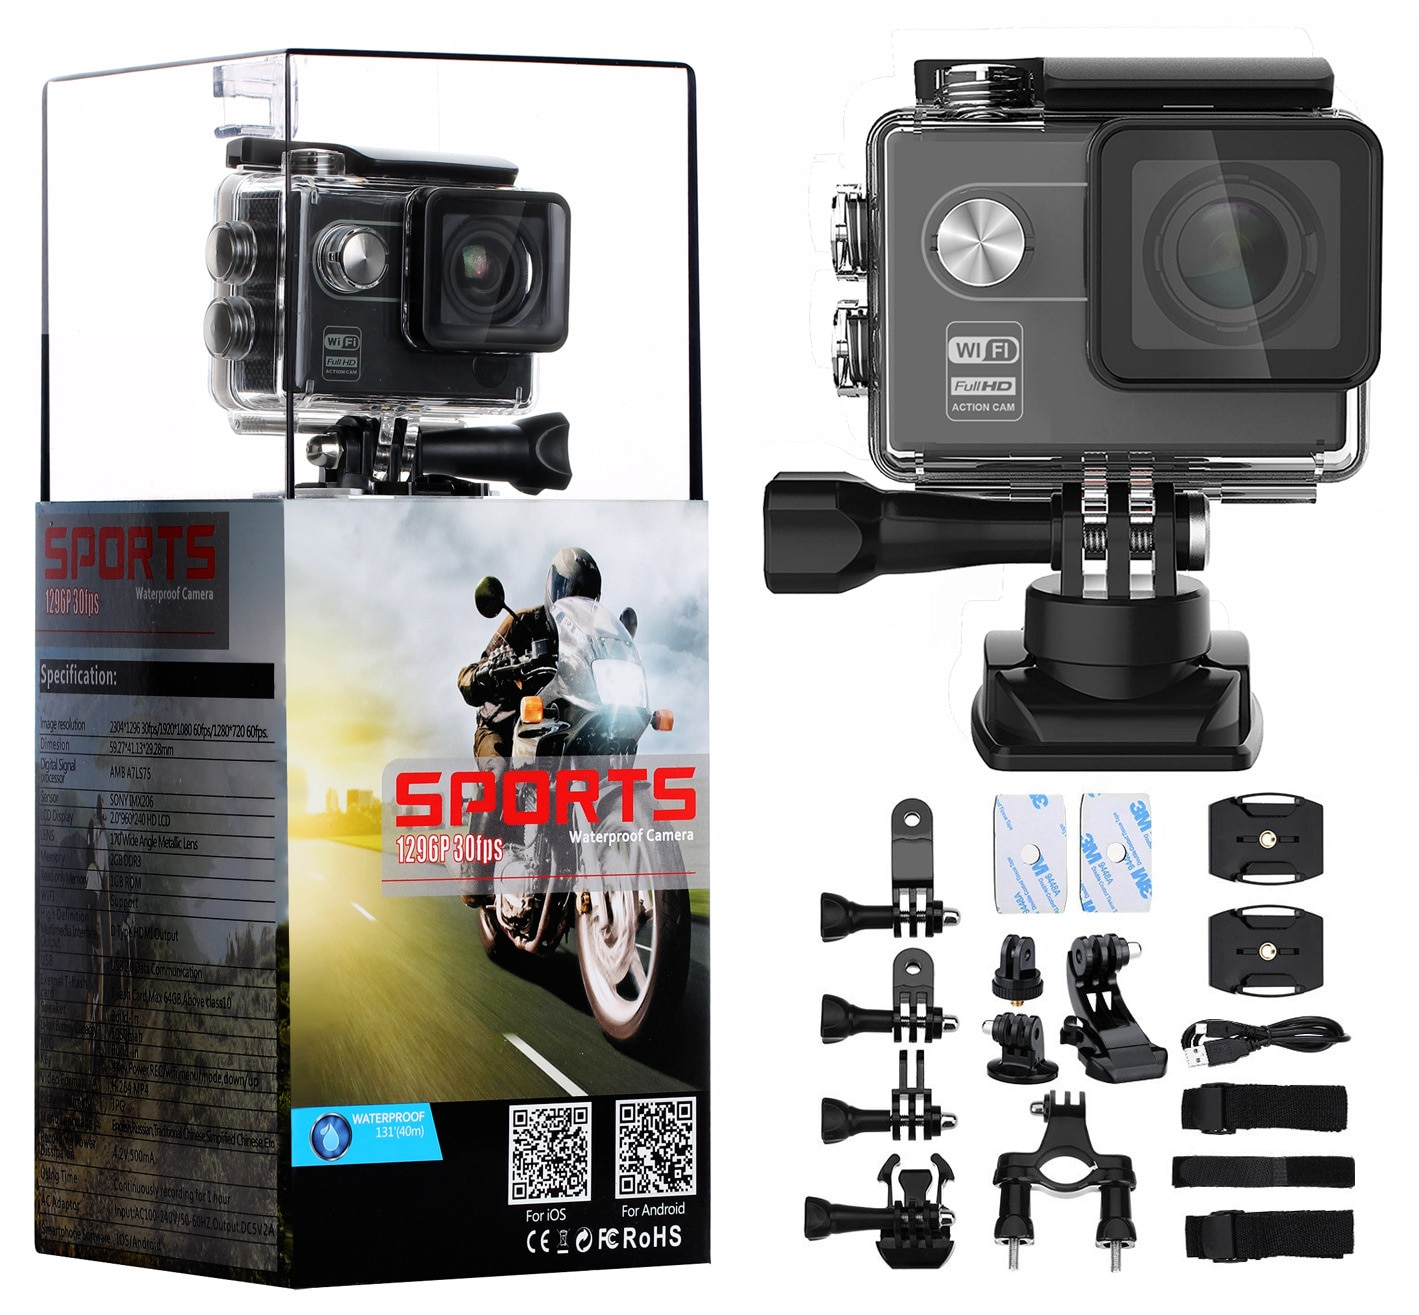 2-inch screen anba scheme HD sports DV smooth picture quality WiFi Sports Camera riding sports camera enlarge